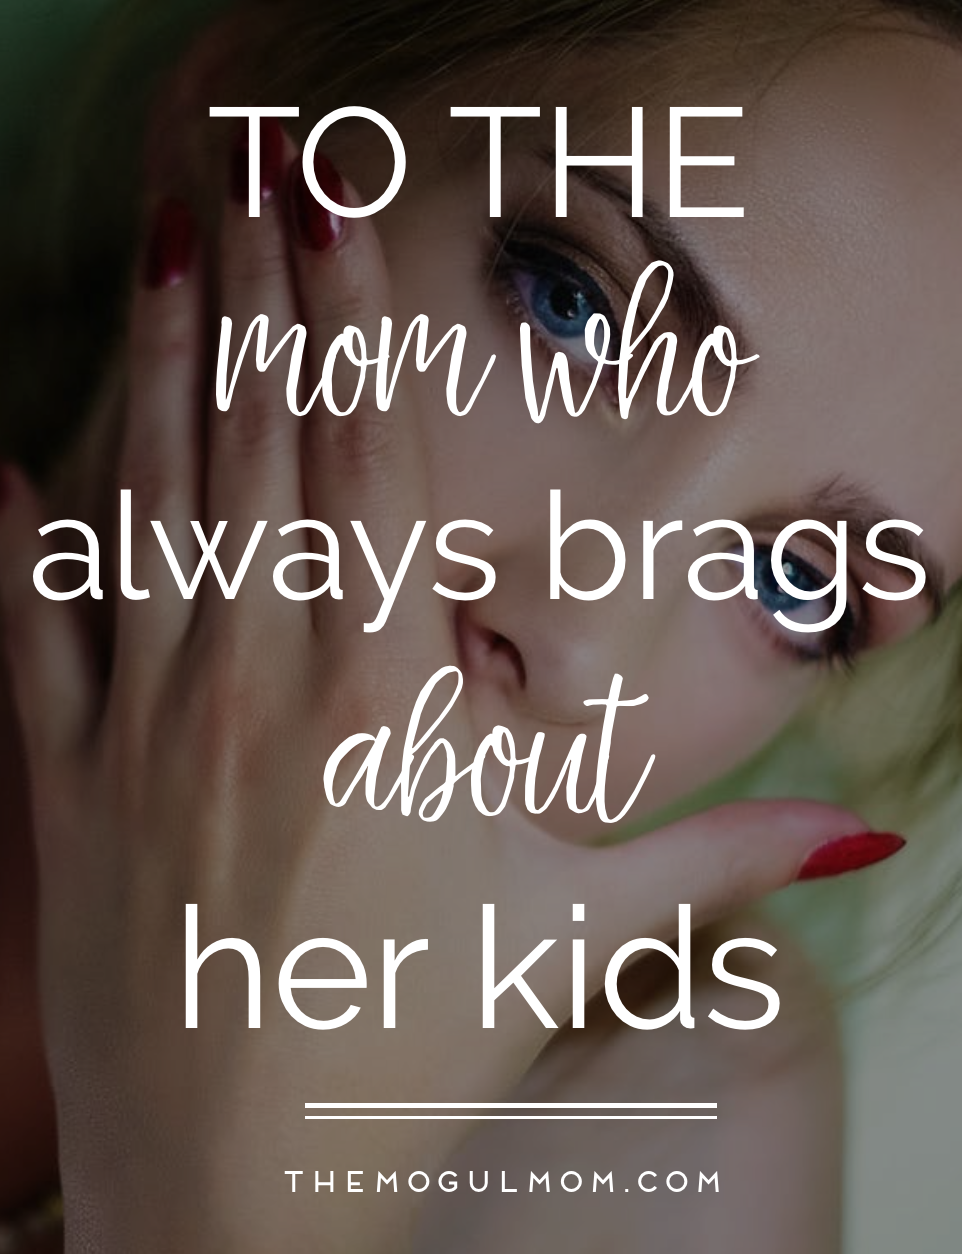 To the mom who brags about her kids…